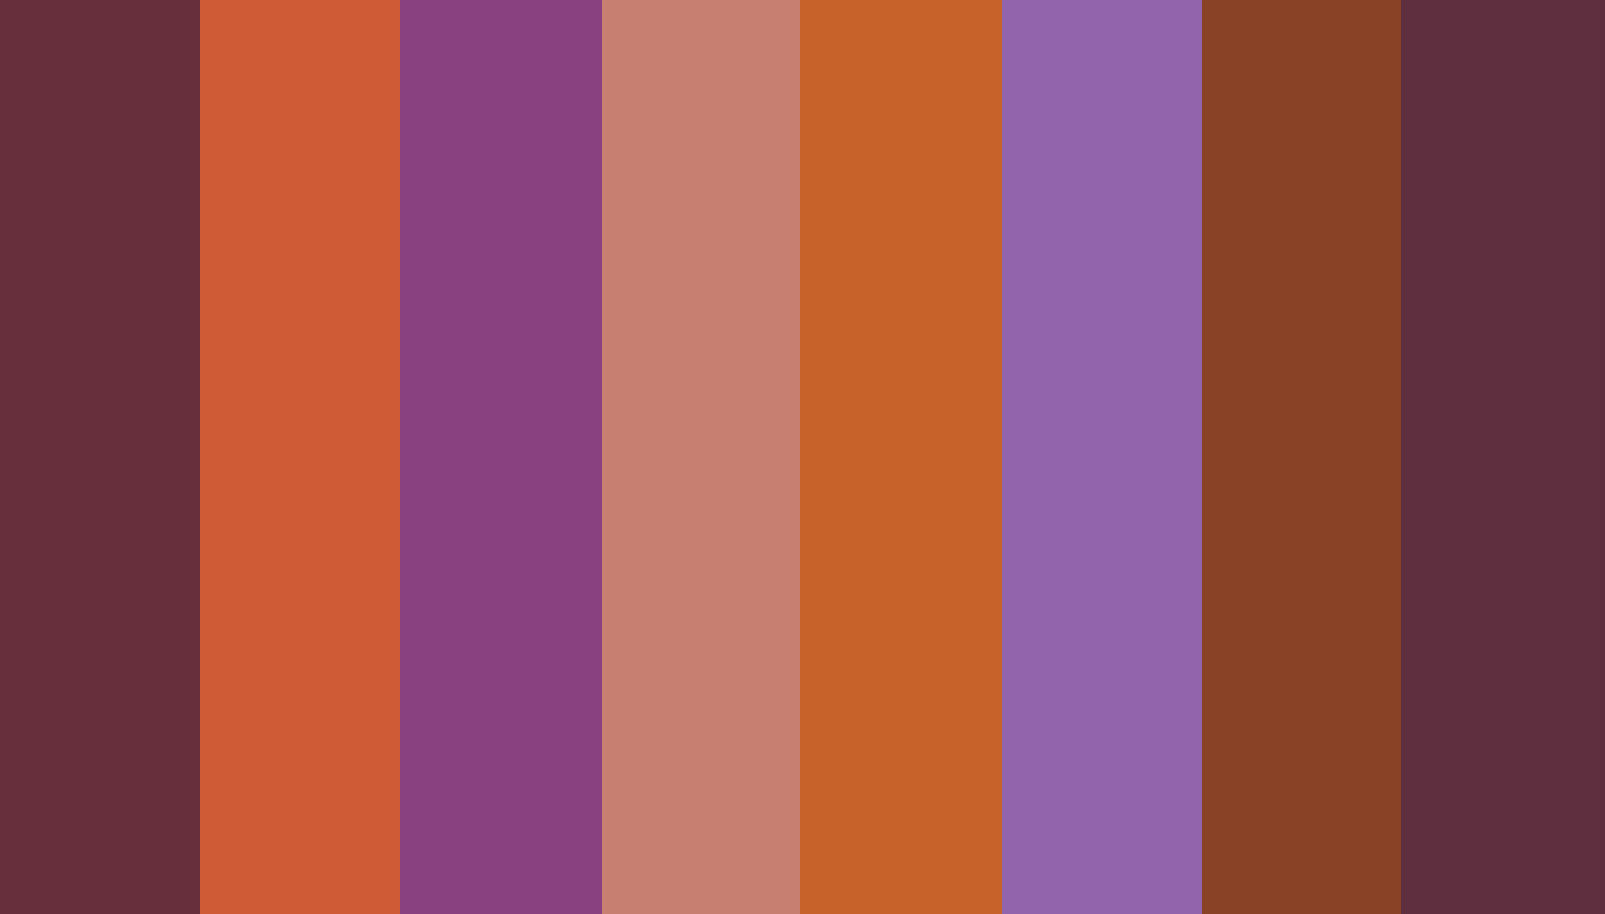 Impeccable Orange Blue What Color Goes Yellow Light Orange Home Design What Color Goes Burnt Orange What Color Goes Uncategorized What Colors Go Orange houzz 01 What Color Goes With Orange